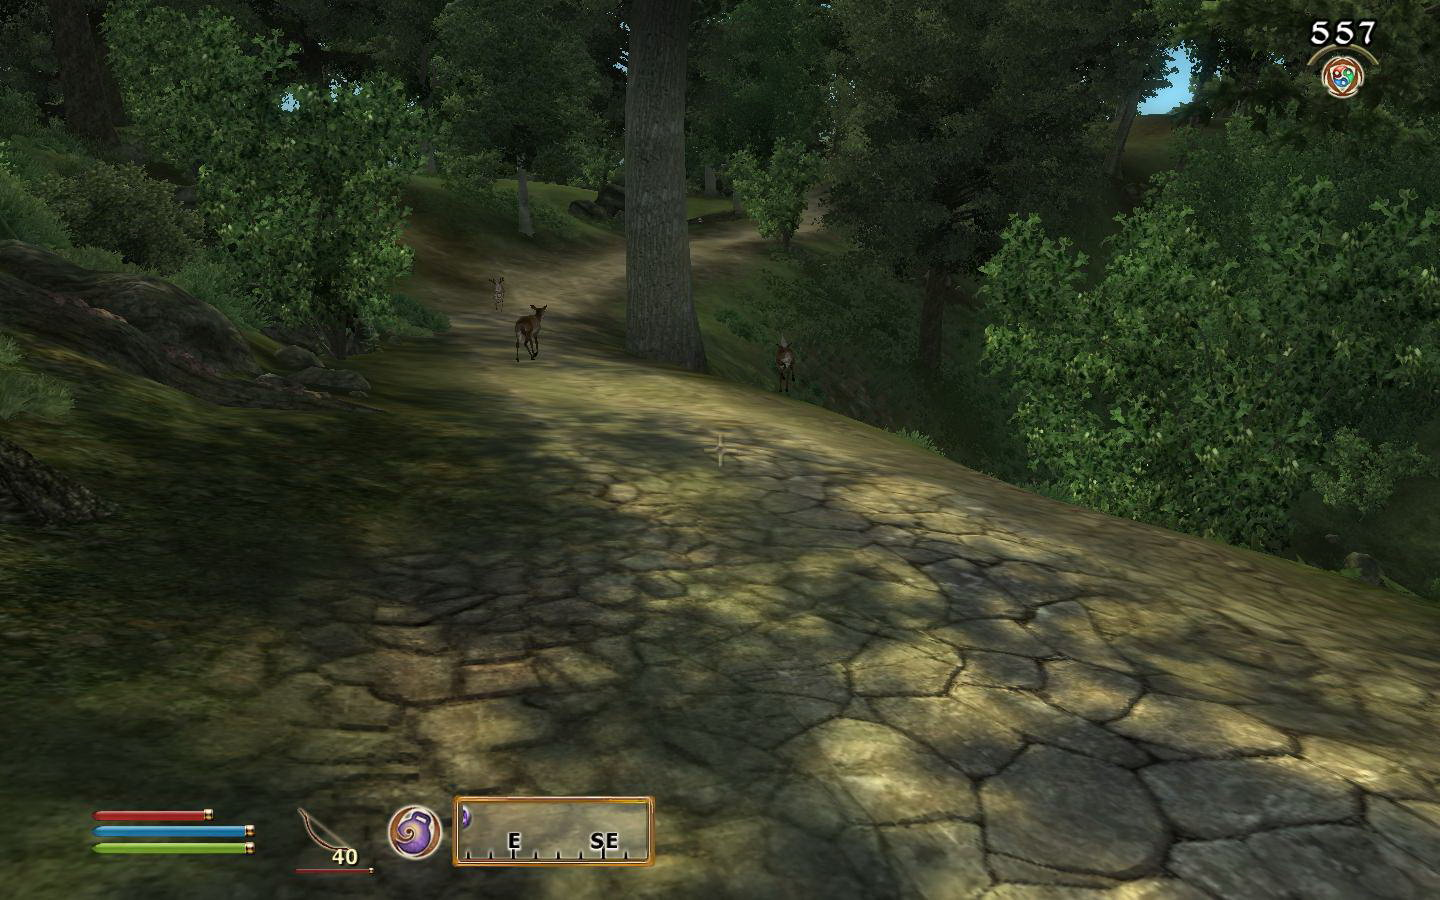 Скриншот The Elder Scrolls IV: Oblivion